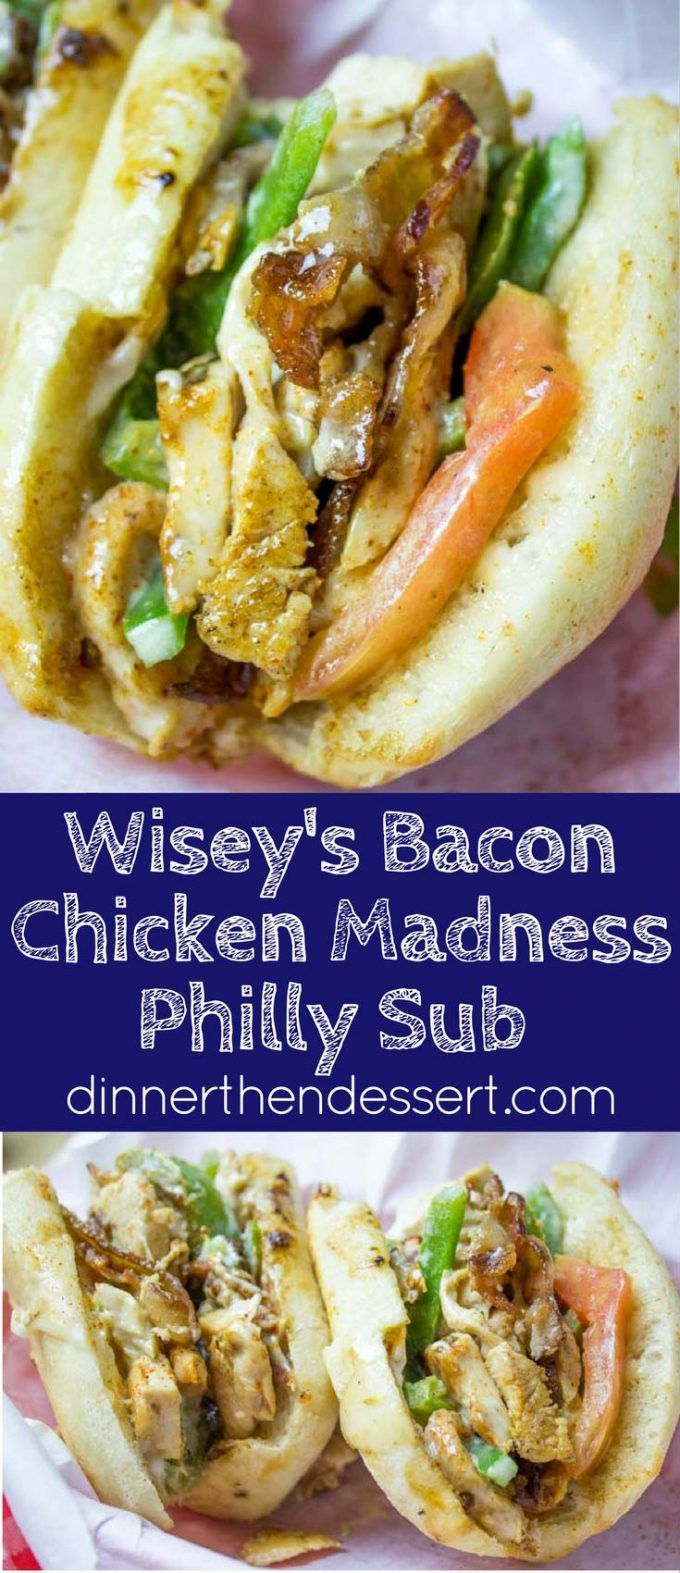 Chicken Madness Philly Sub Sandwiches Are A Georgetown University Tradition And An Amazing Alternative To Your Classic Philly Chee Poultry Recipes Food Recipes